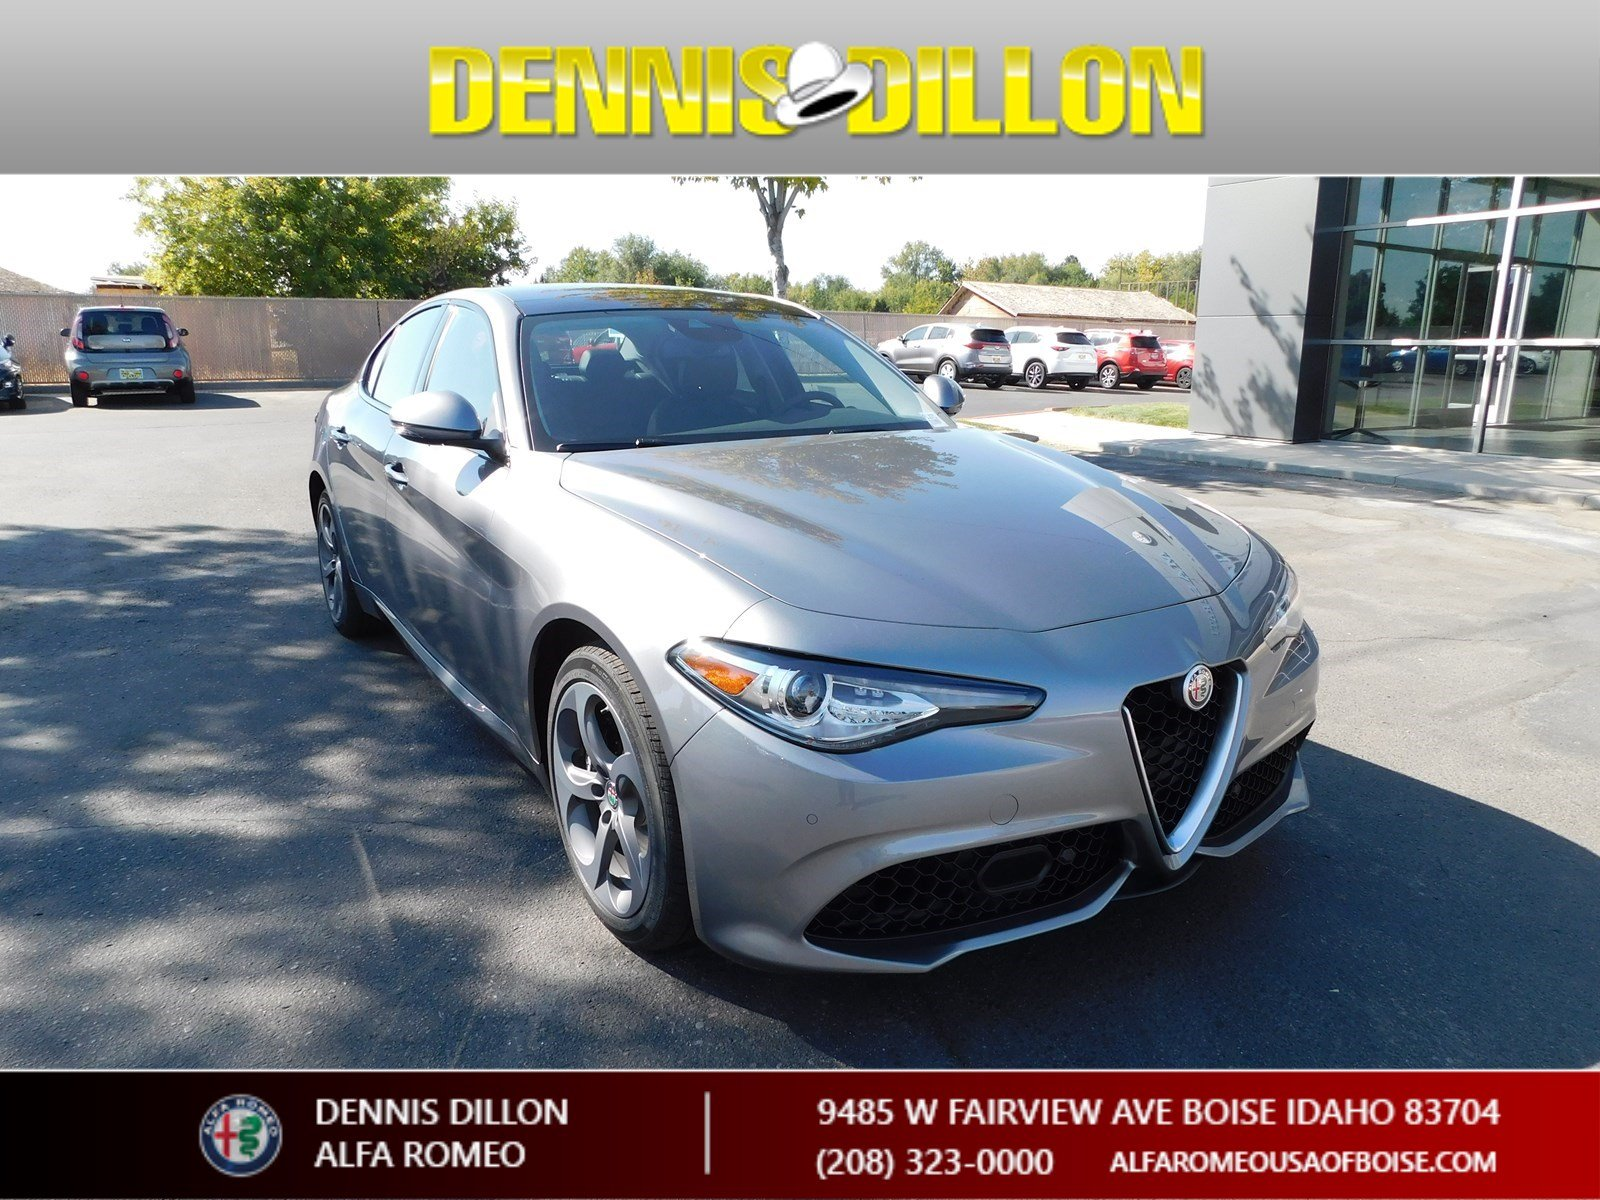 New 2018 Alfa Romeo Giulia Sedan in Boise F1J071